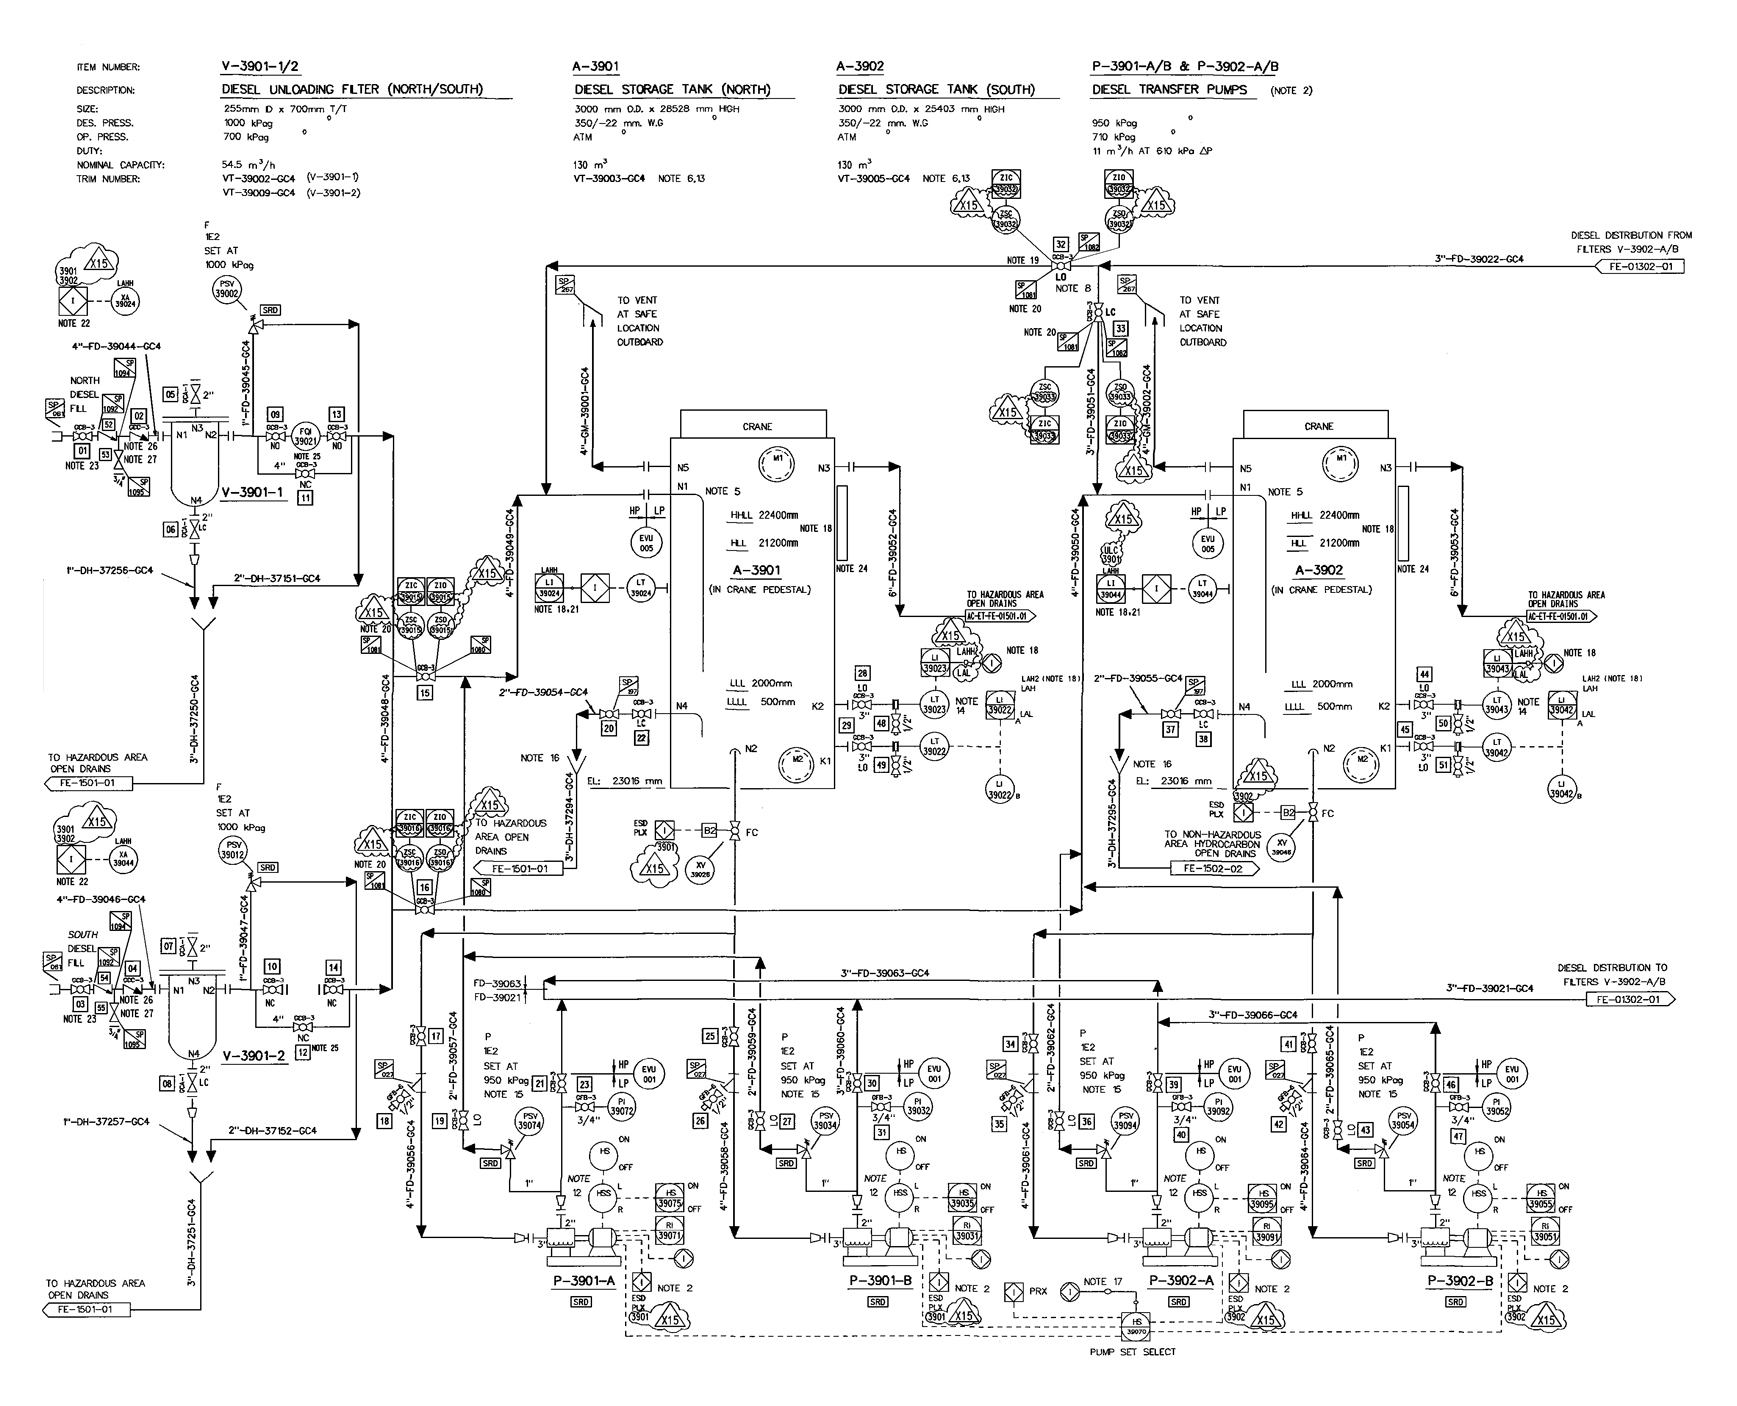 Differences Between Tvs Diode And Zener Diodes In Diagrams And In Practice further Geo Maps besides Watts  s Kilowatt Hours What Does It All Mean furthermore Watch in addition Template Task Status. on electrical diagram symbols